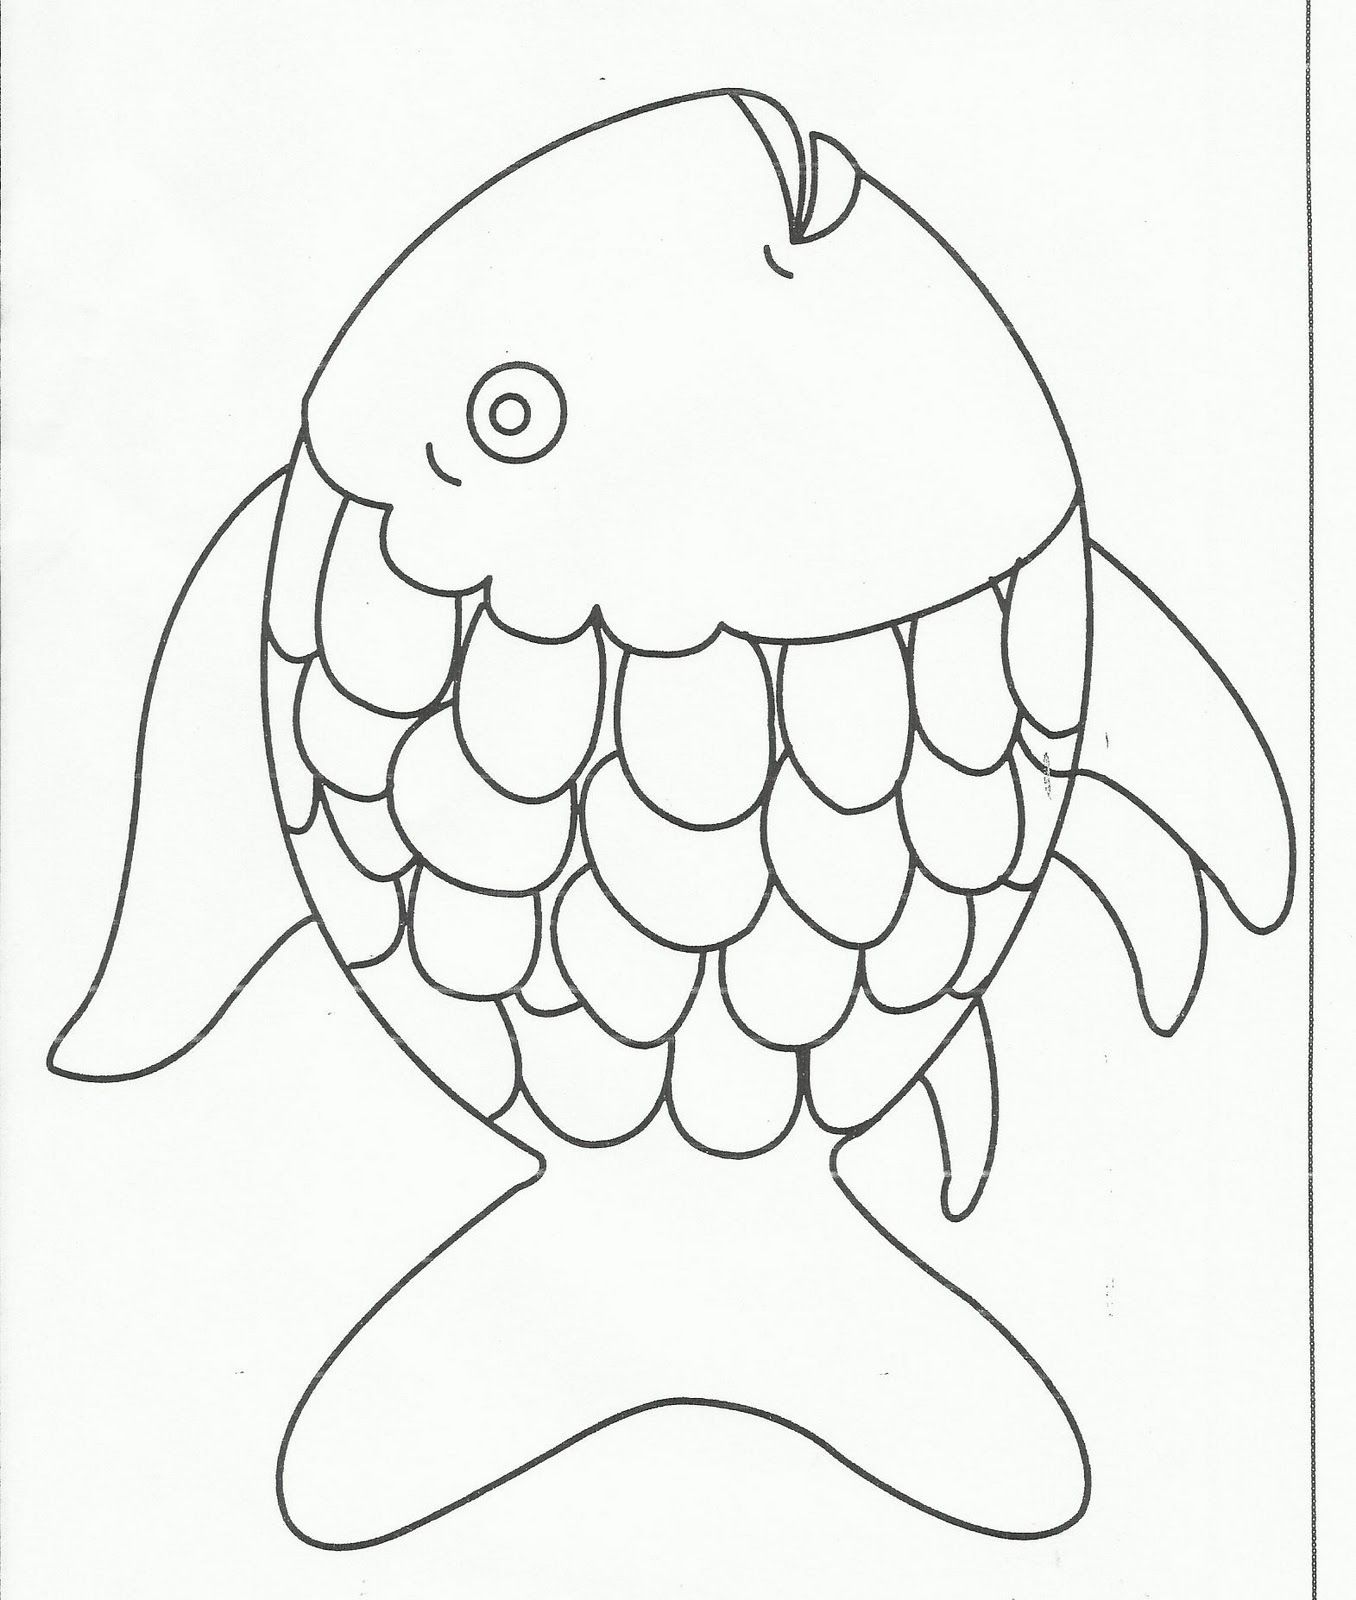 rainbow fish coloring page free large images camp4 pinterest d346c31fd65af0aa21e118a94b241286 458100593323315005 - Rainbow Picture To Colour